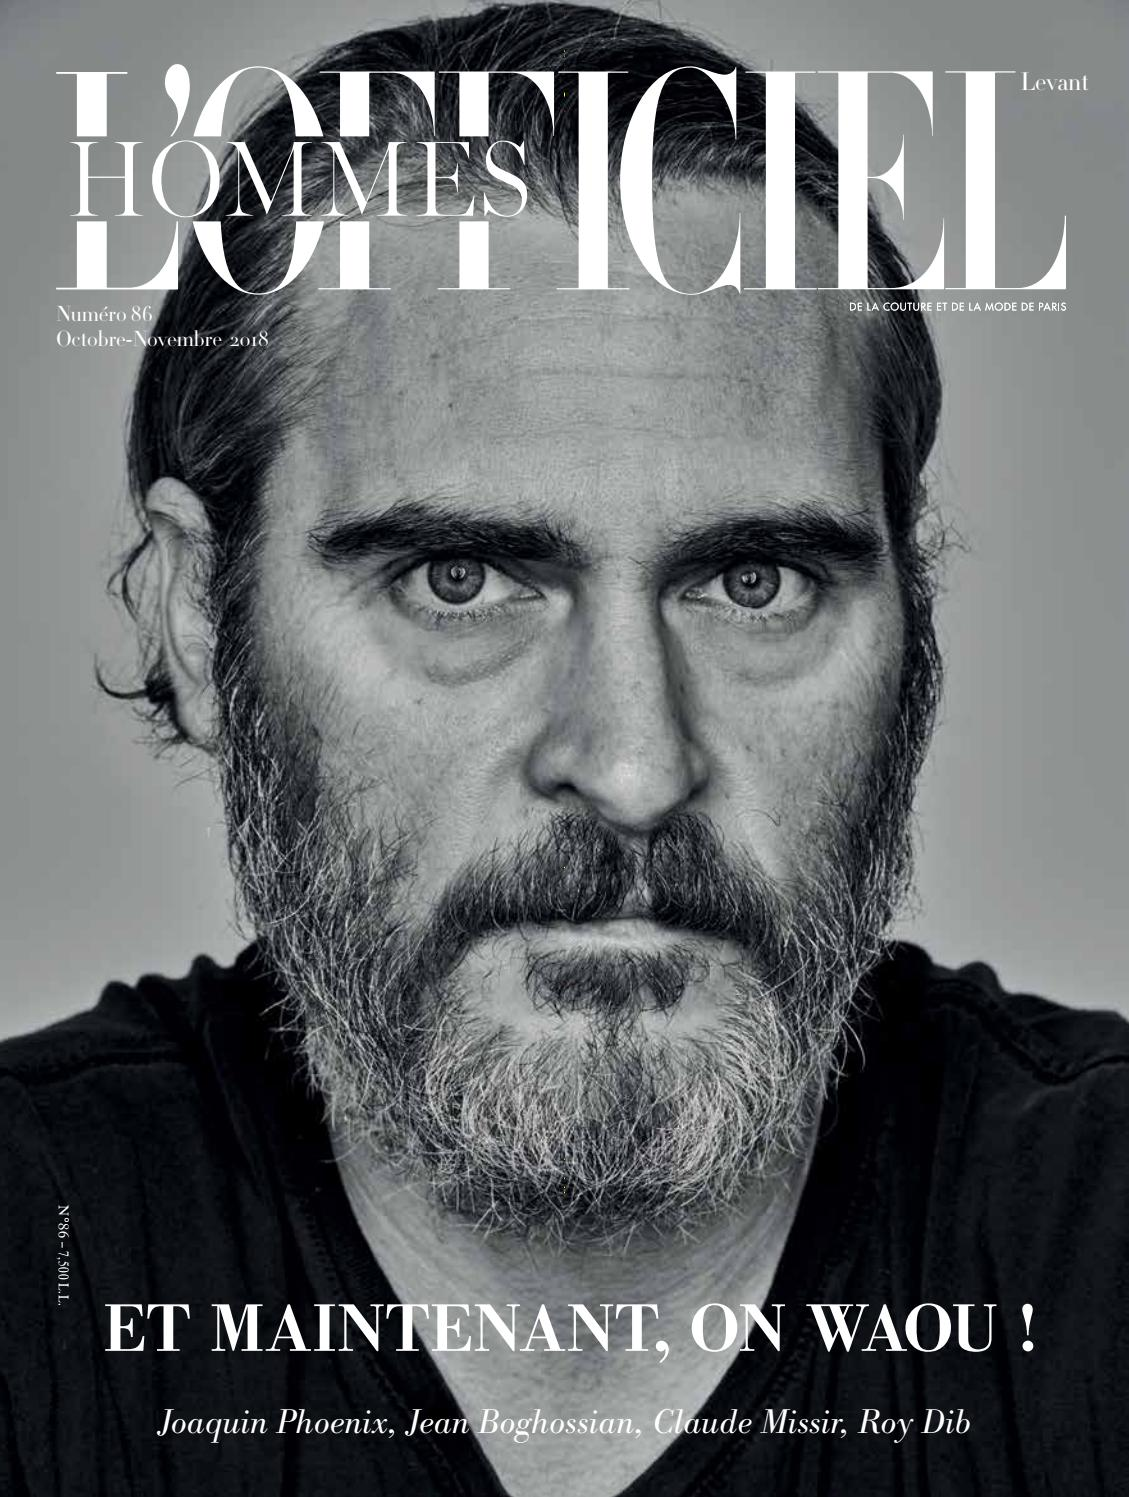 L Officiel-Hommes Levant, October-November, Issue 86 by L Officiel Levant -  issuu 85f92def70fe